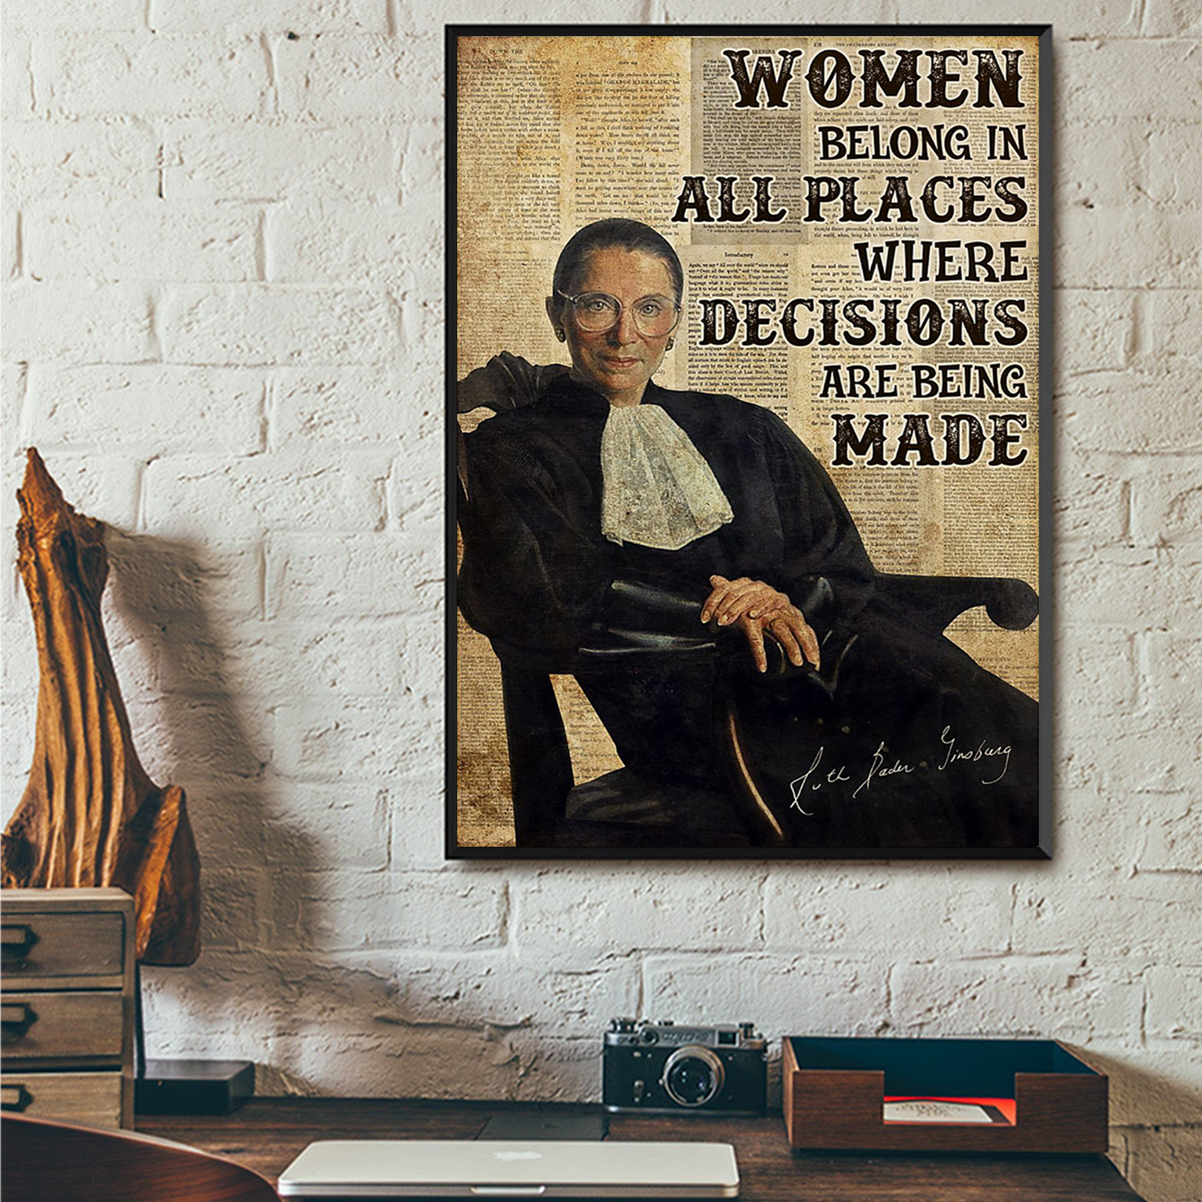 RBG women belong in all places poster A1